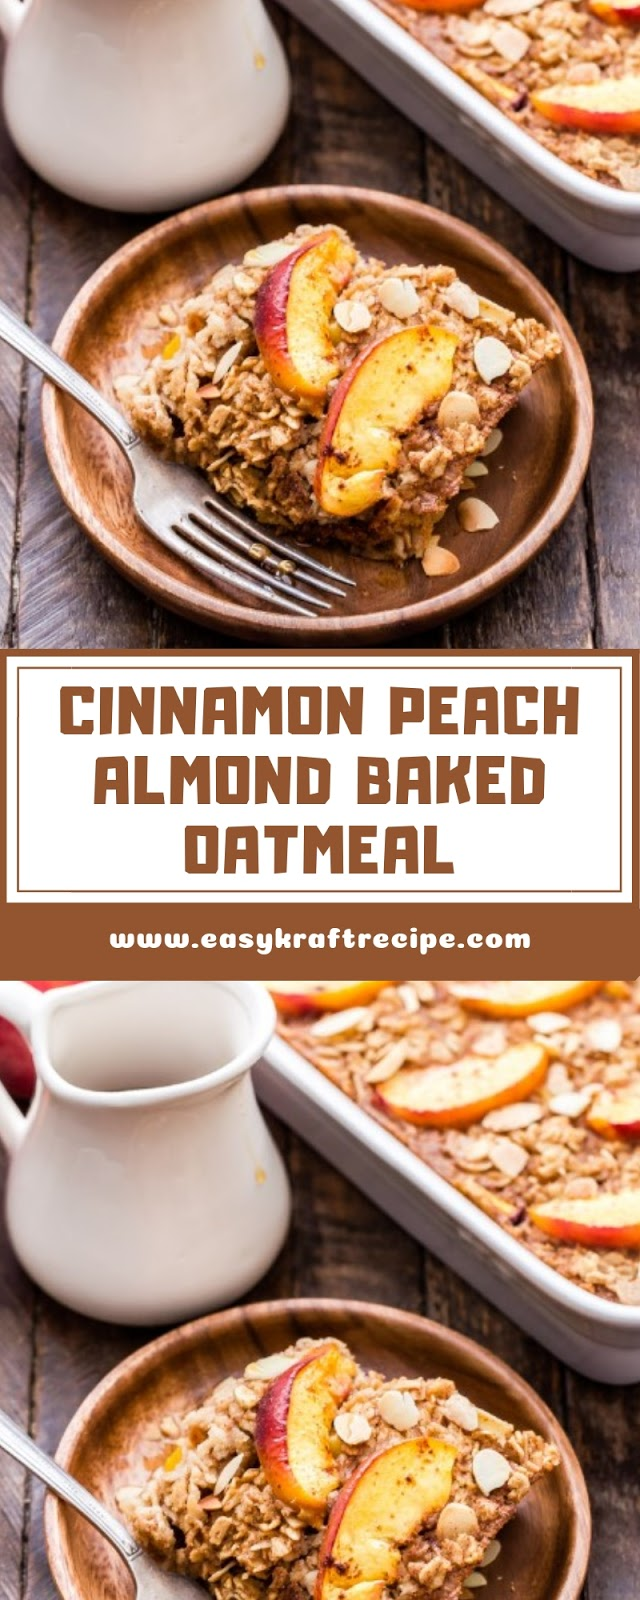 CINNAMON PEACH ALMOND BAKED OATMEAL